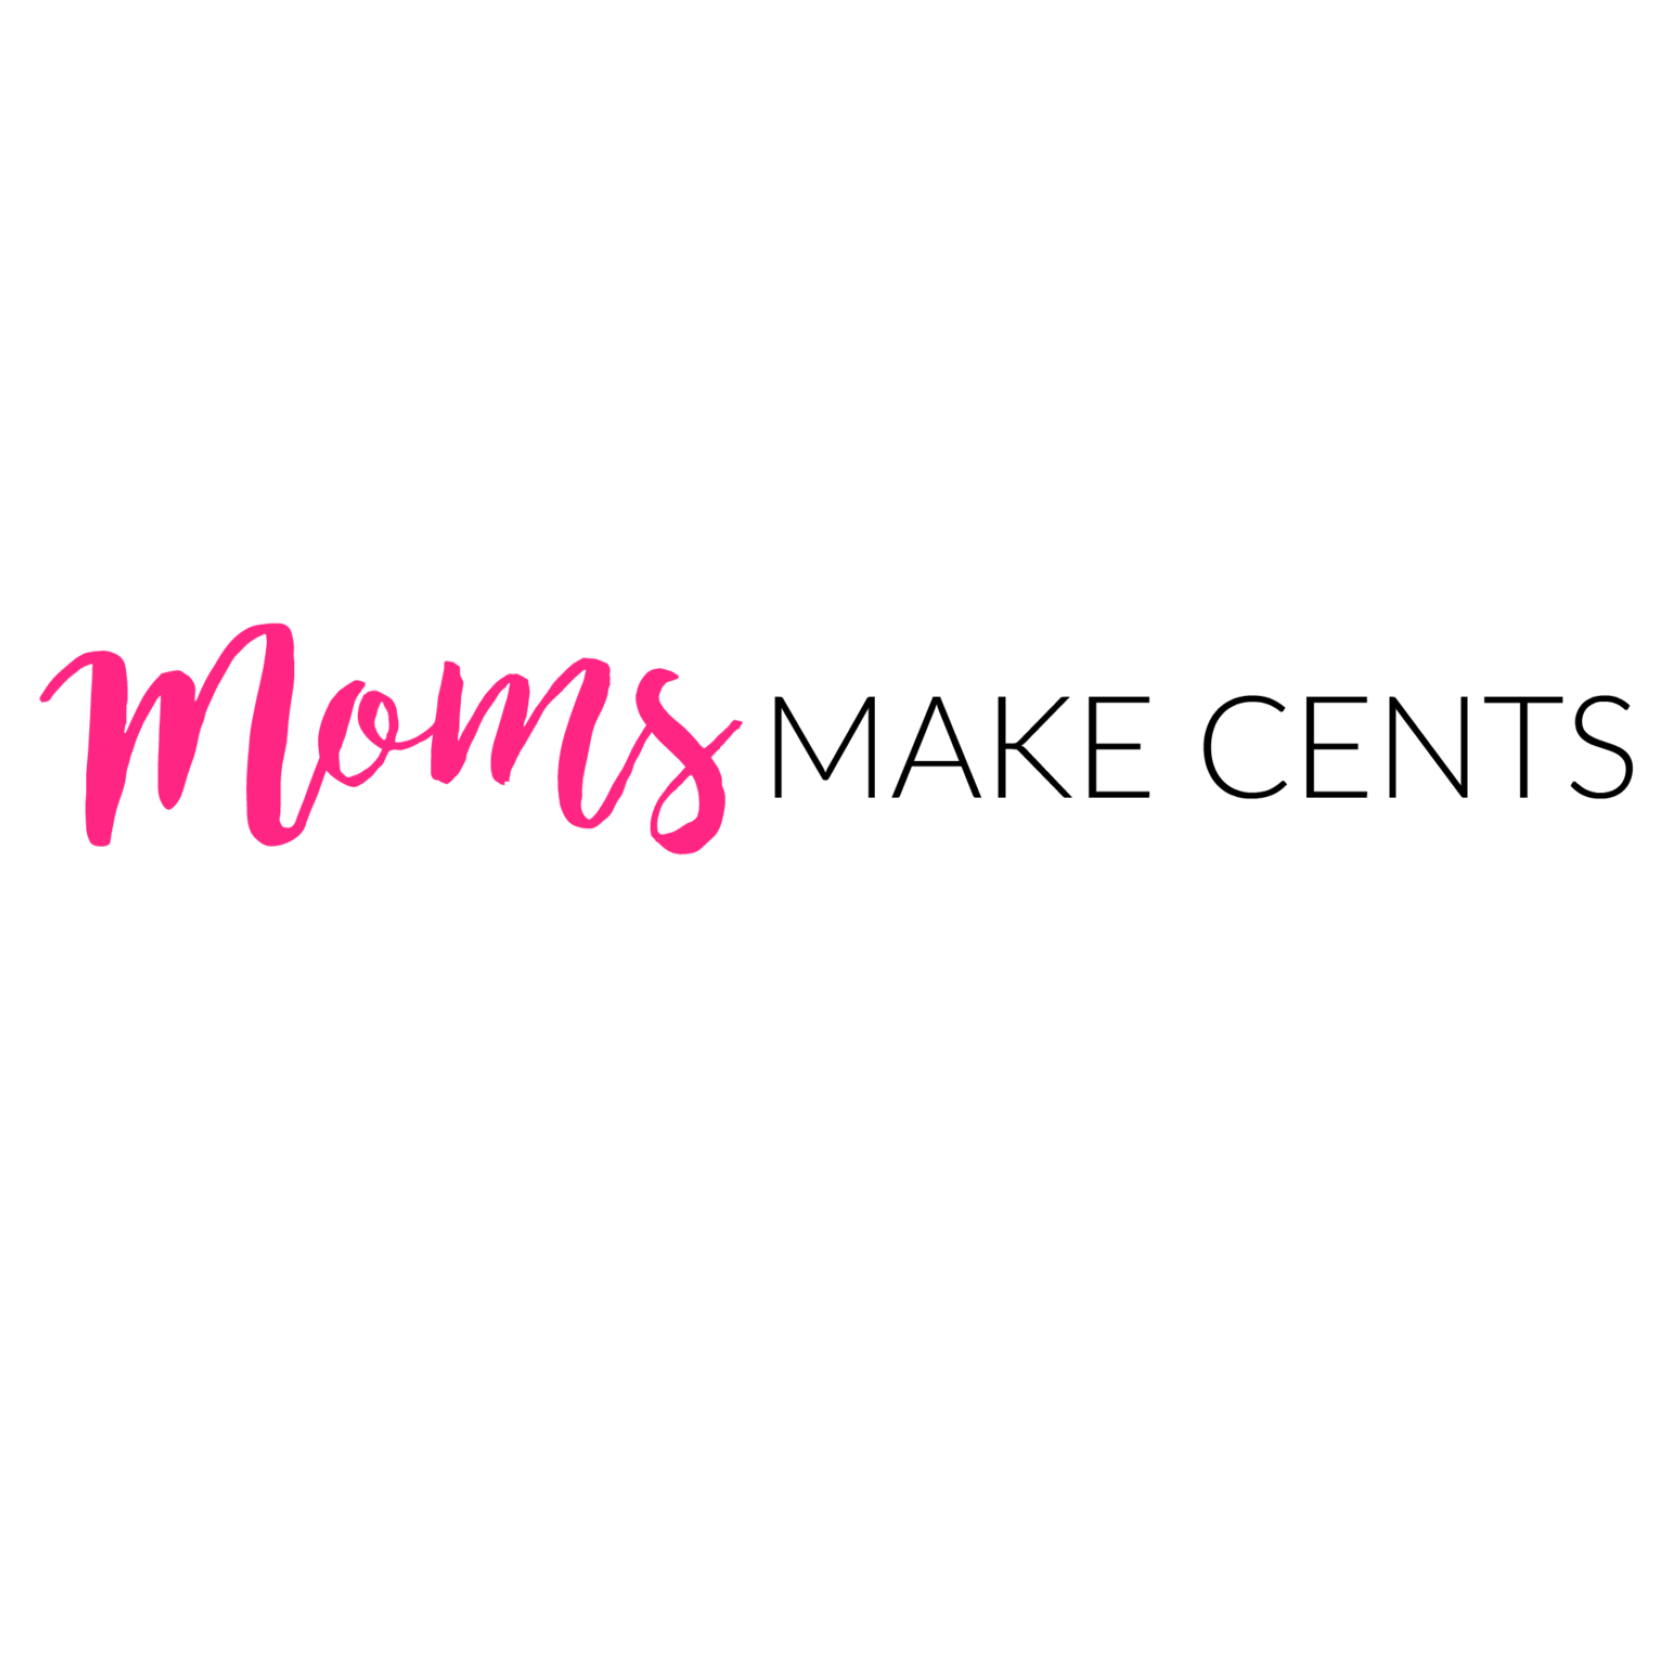 moms-make-cents-logo-miranda-nahmias